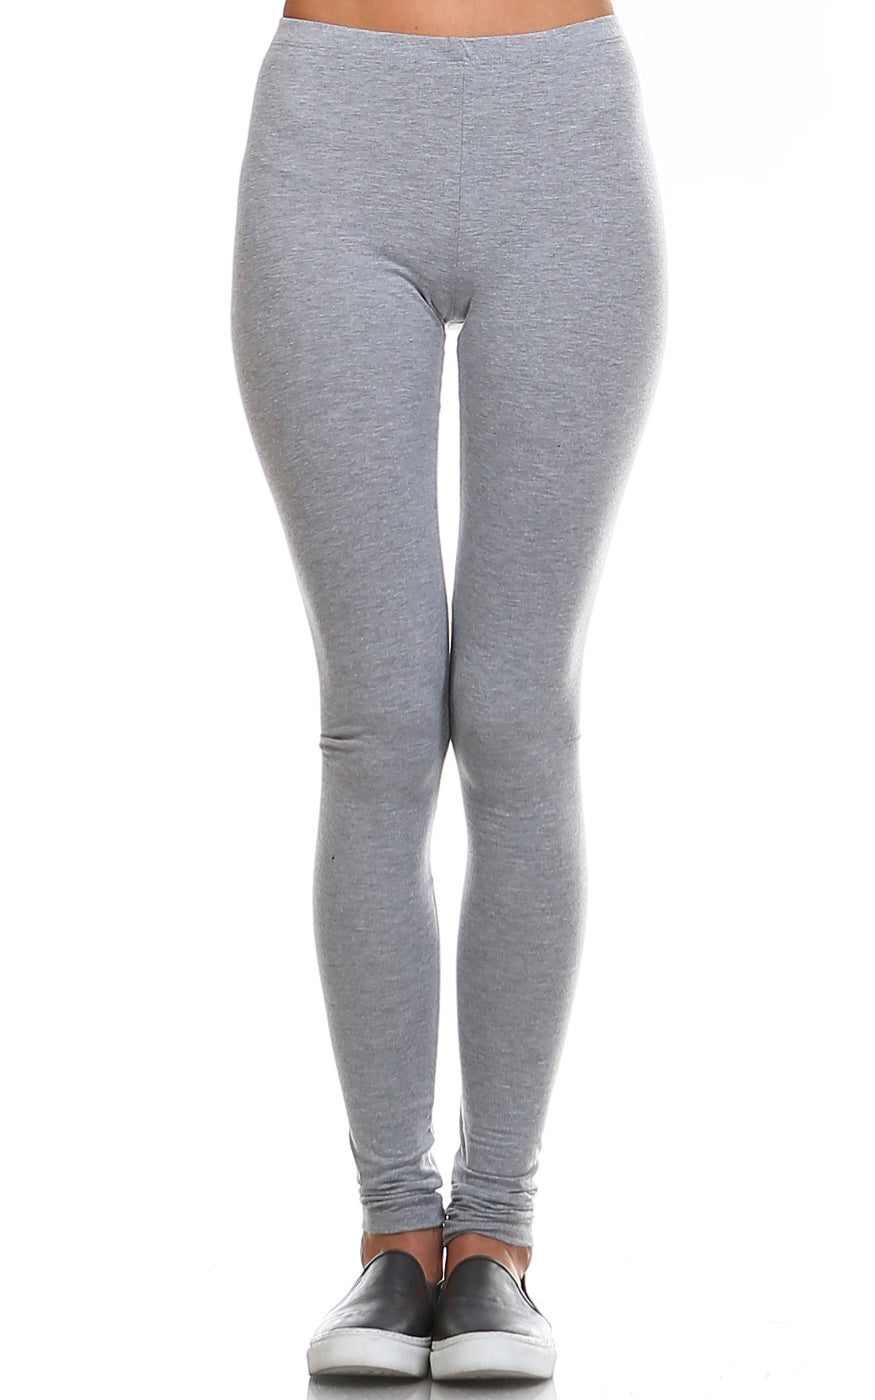 urban x apparel, urban x clothing, urbanxapparel, urbanxclothing, wholesale, women clothing, bohemian, free people, free spirit, young contemporary, fashion trend, fashion style, fashion 2019,RETAIL, Solid Basic Cotton Leggings Active wear Color Heather Grey, URBAN X APPAREL